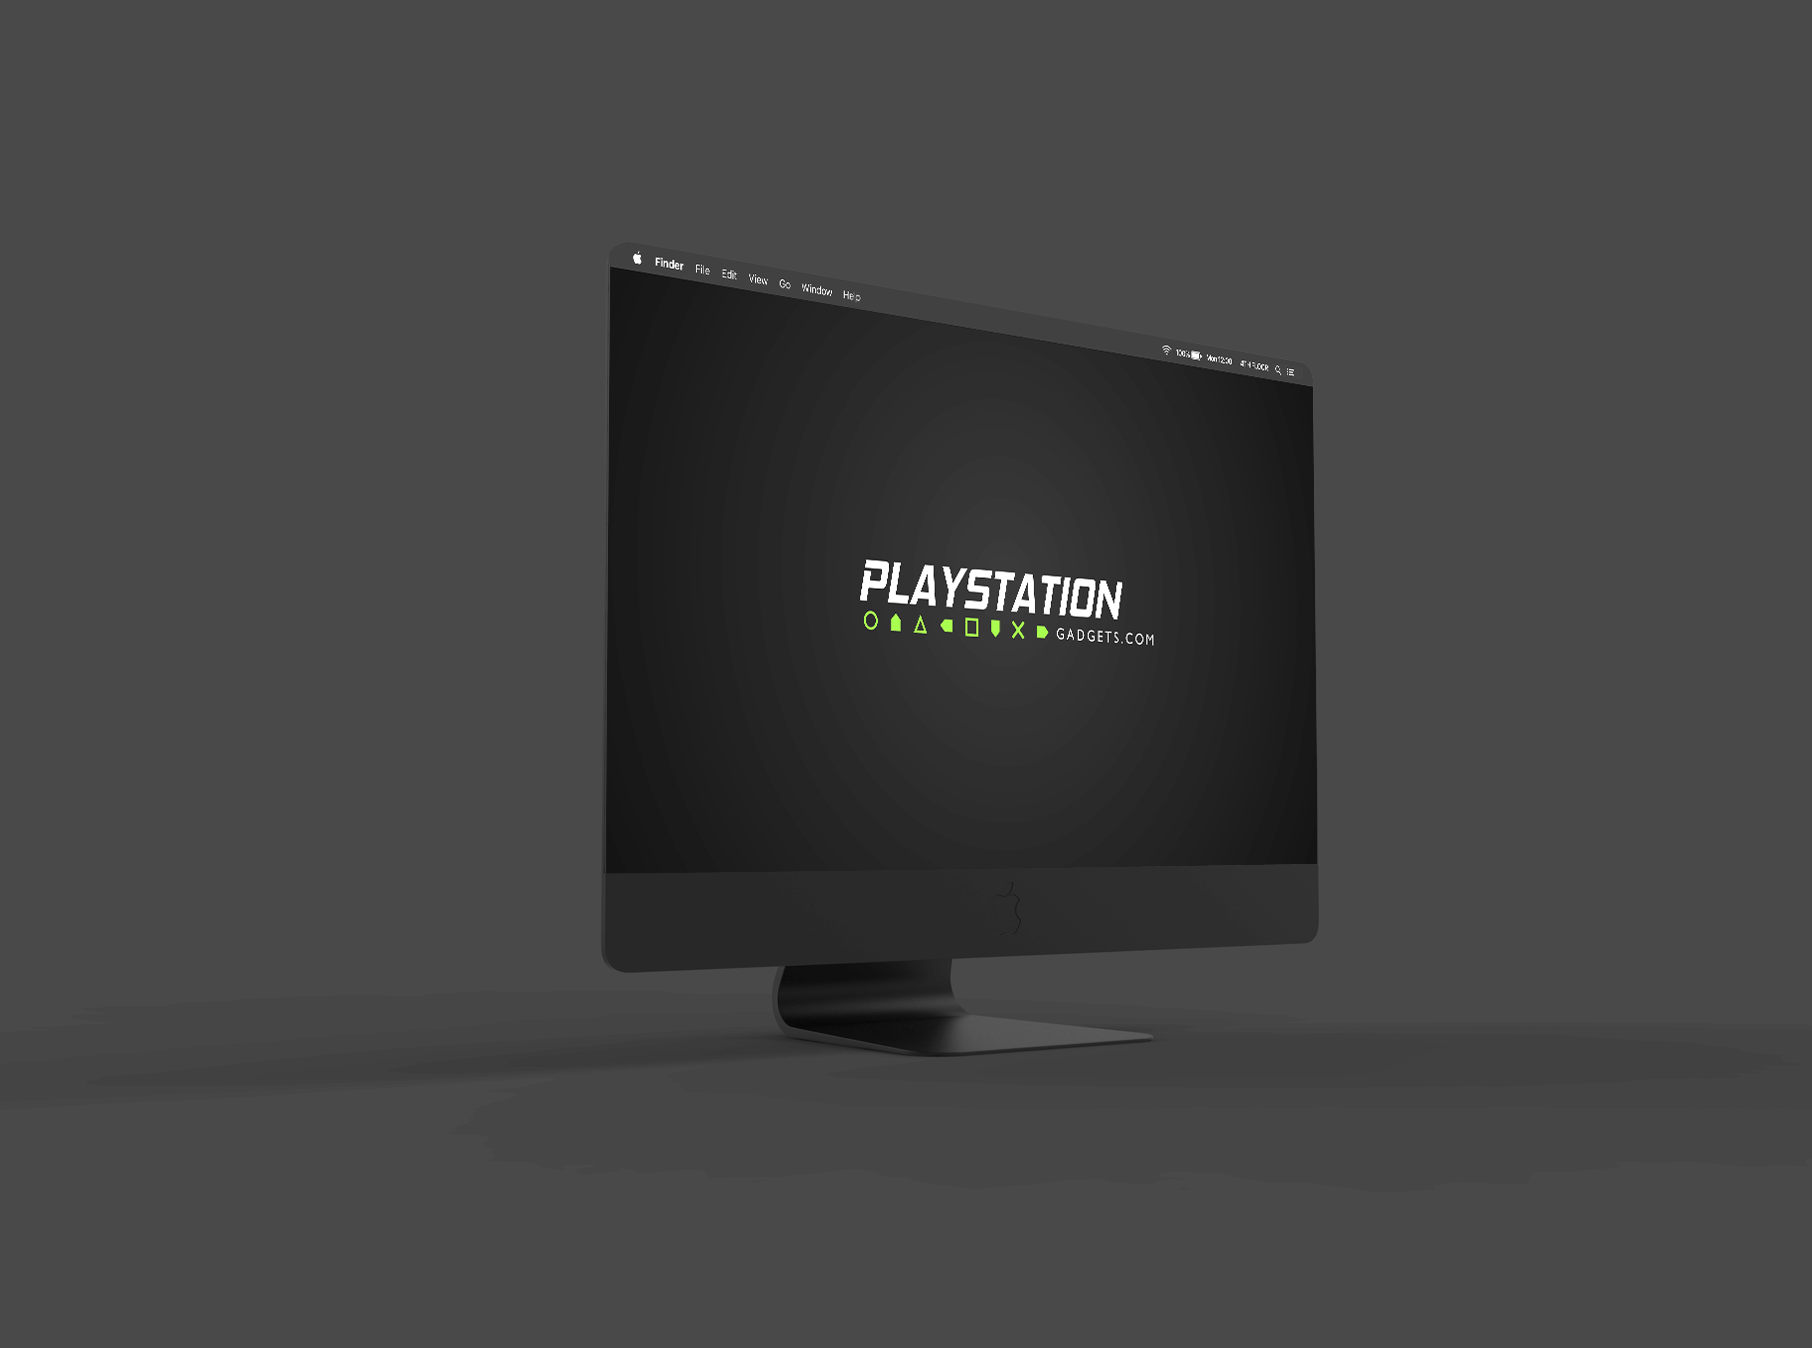 playstationgadgets logo design